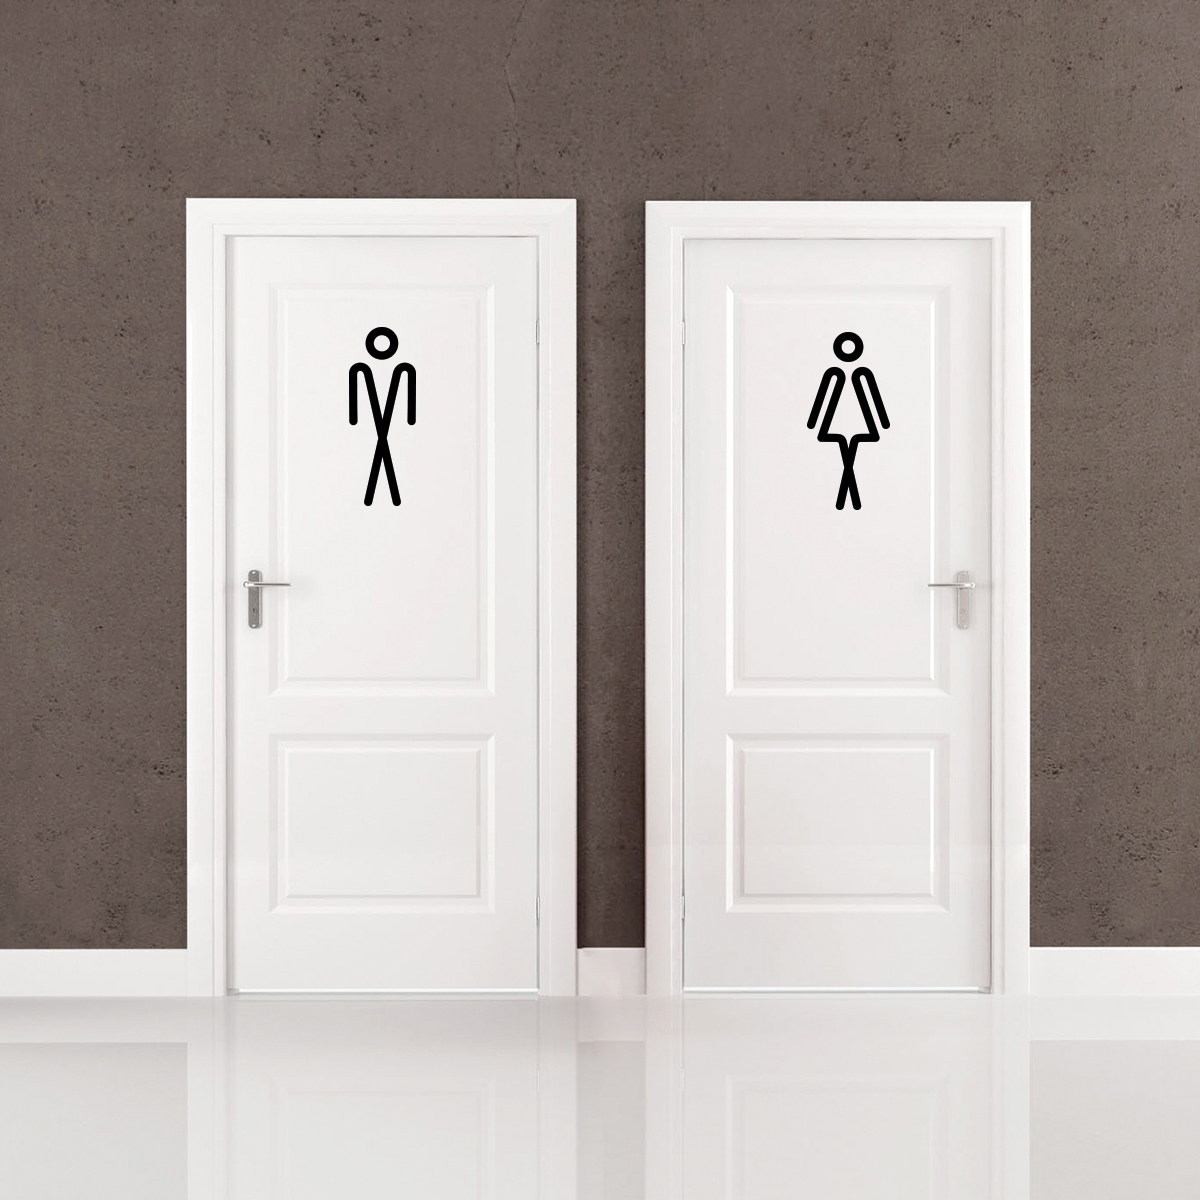 Sticker porte toilettes homme et femme stickers for Porte toilette